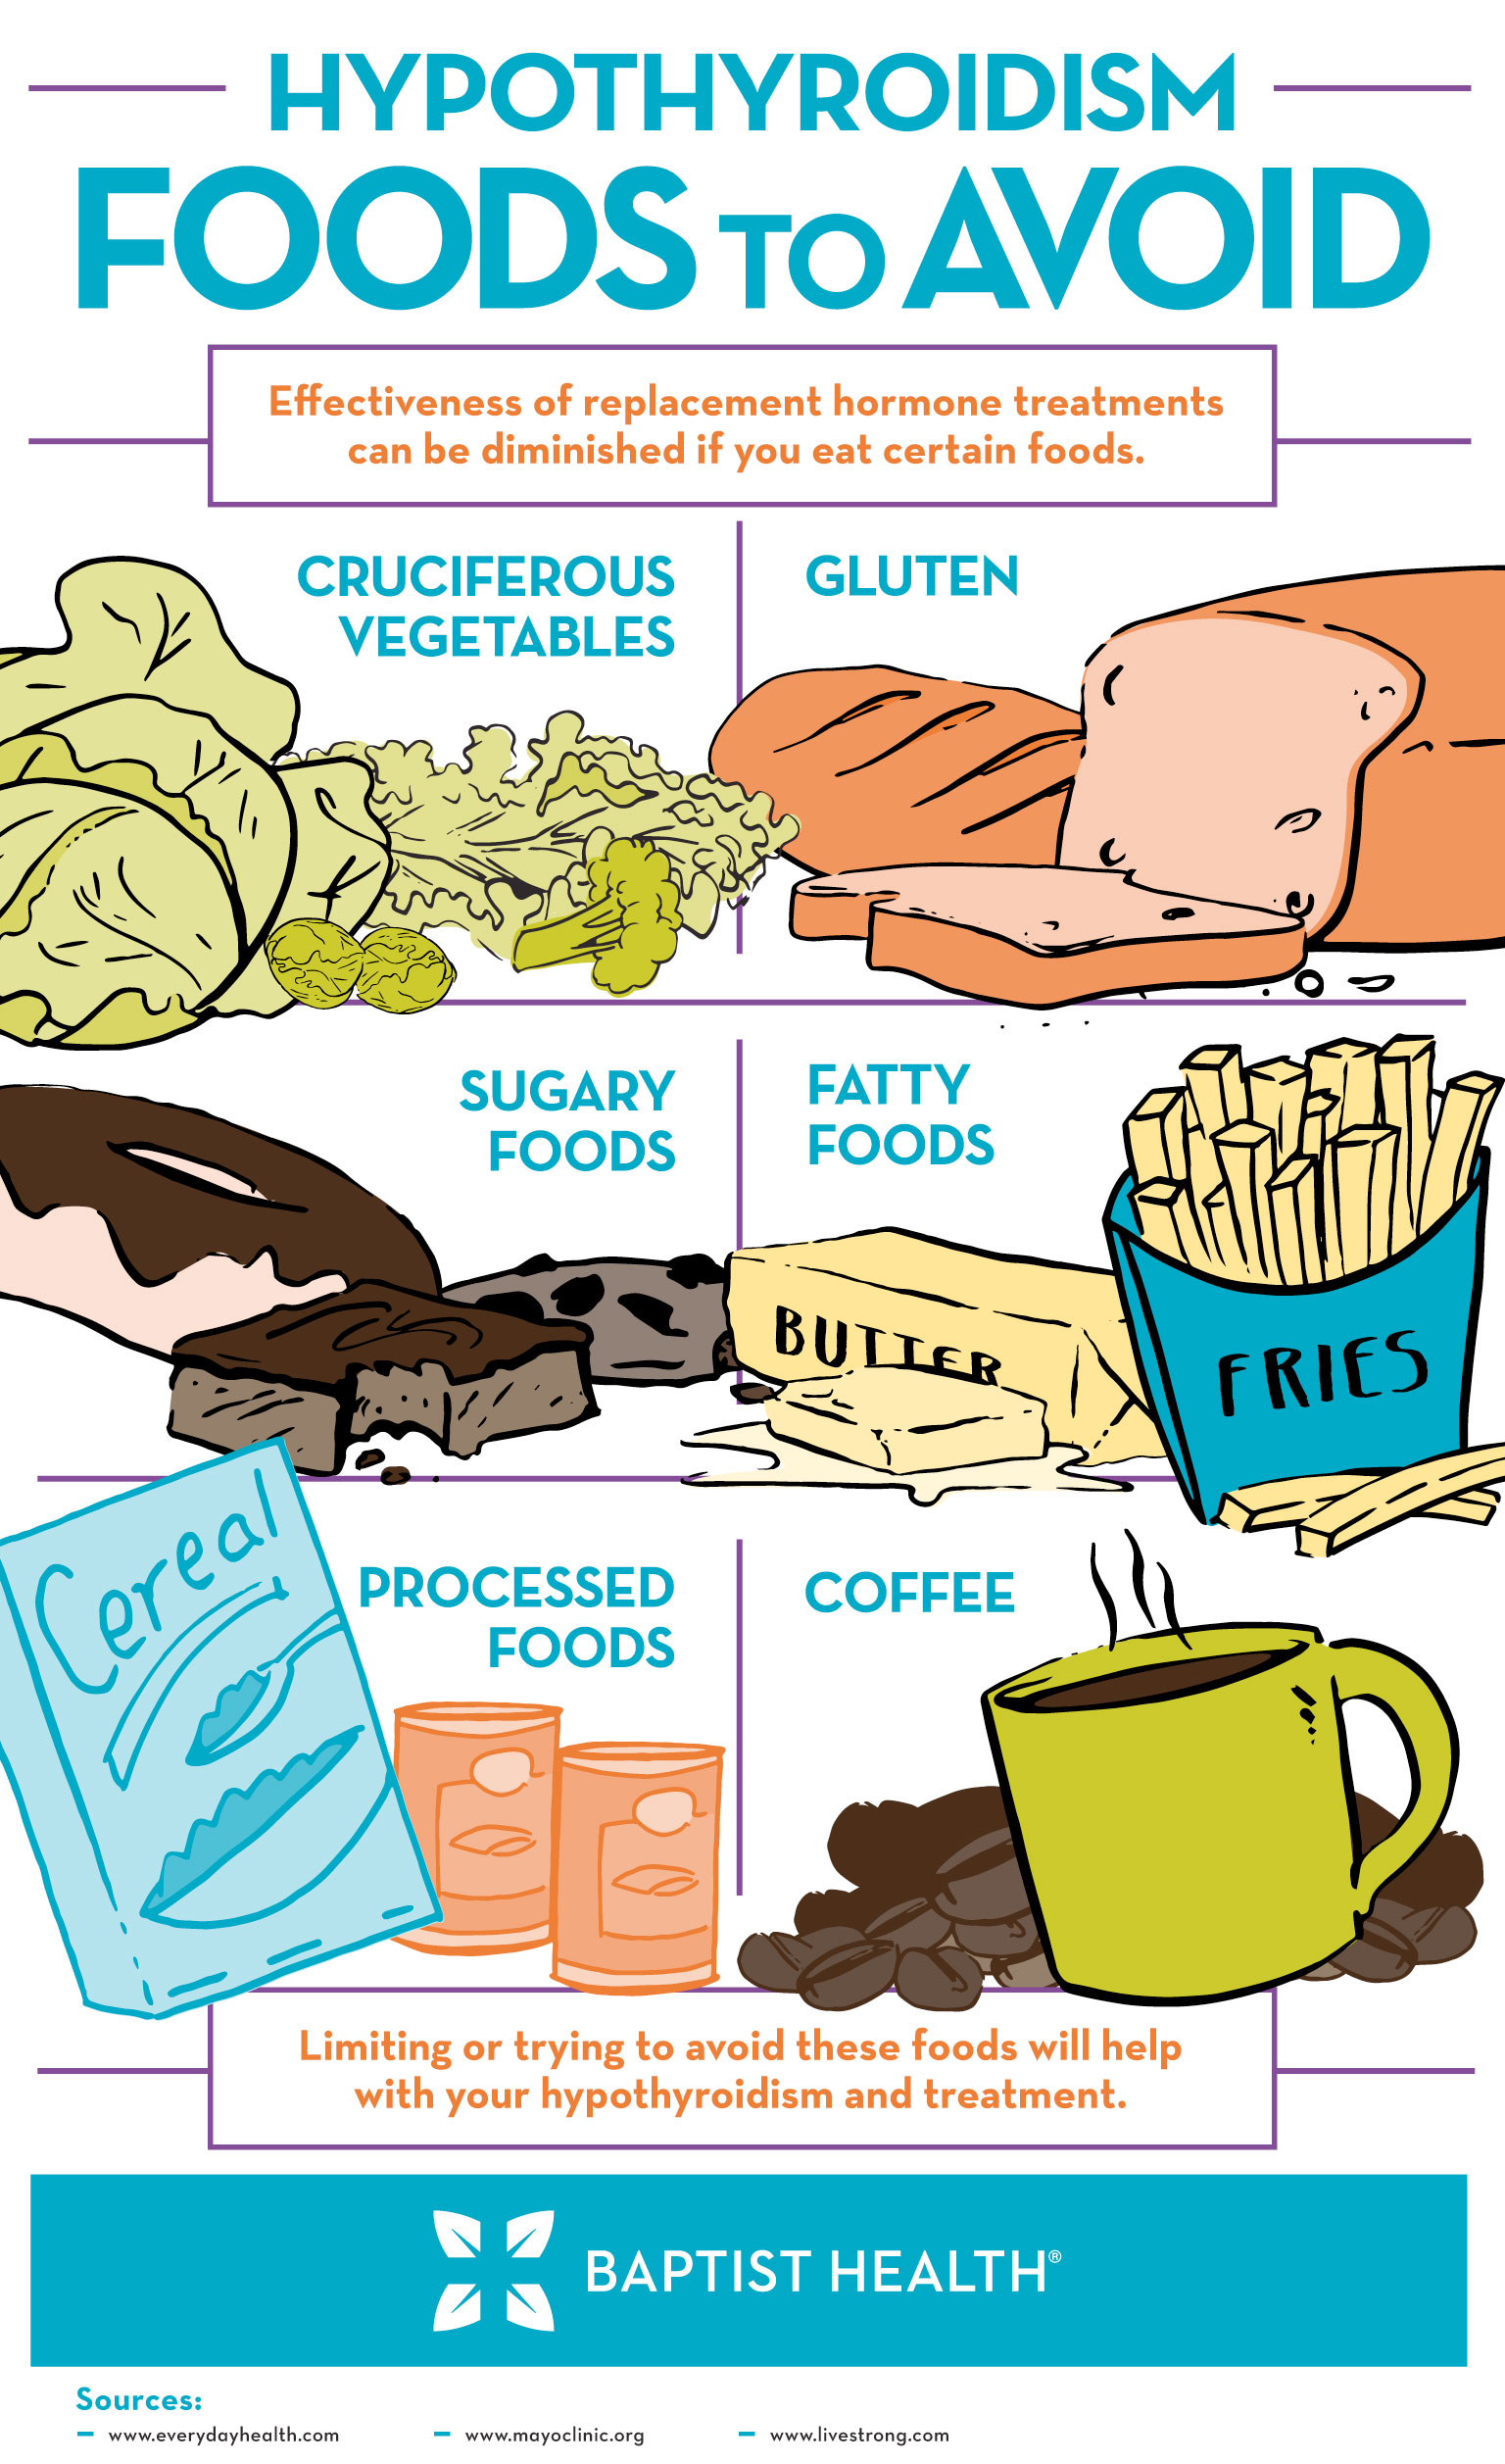 infographic-foods-to-avoid-hypothyroidism